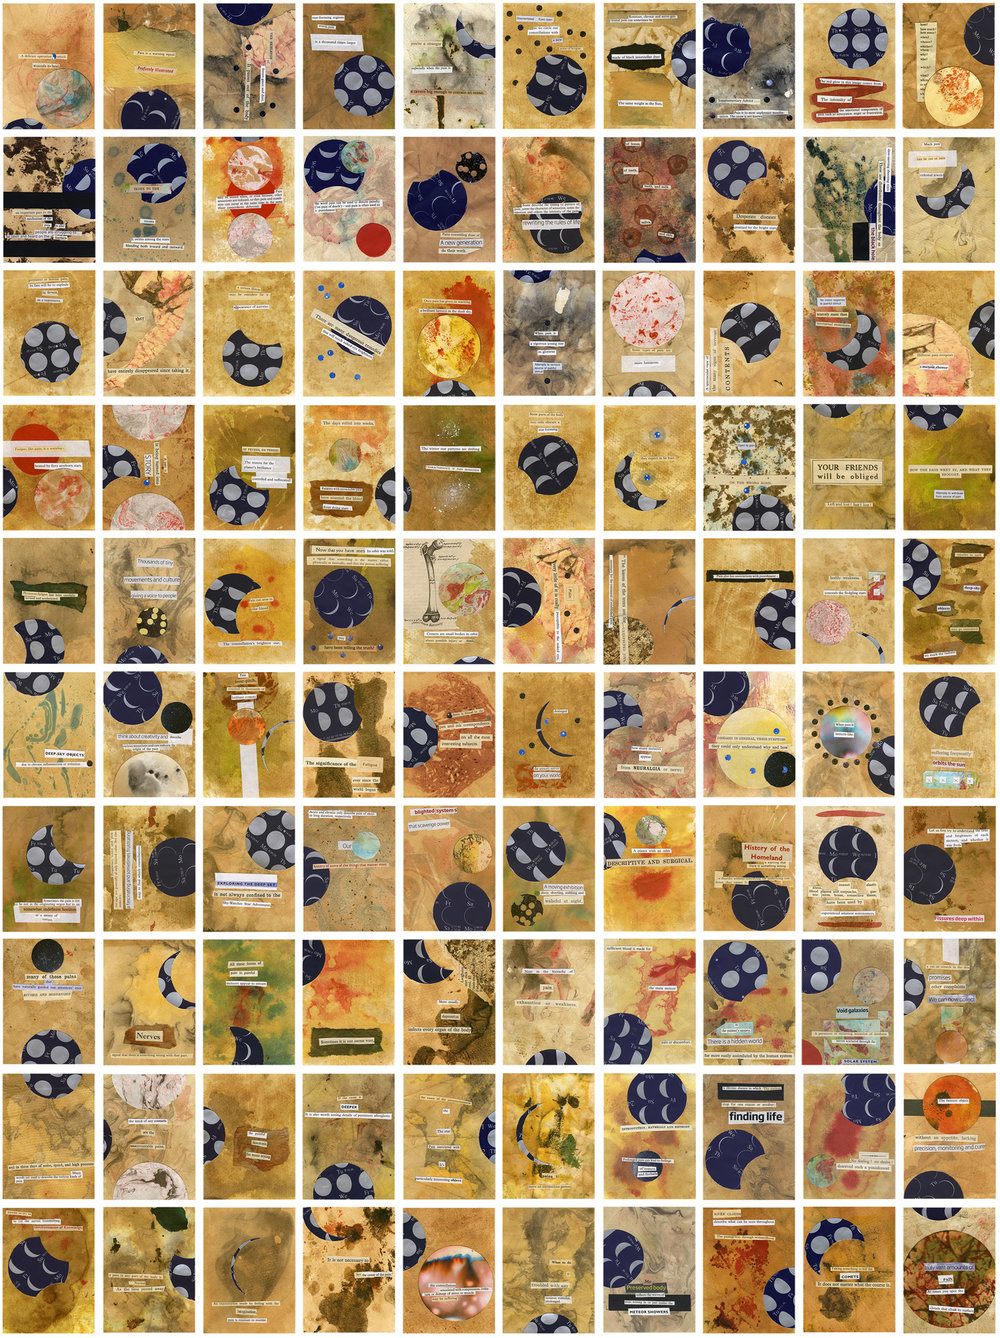 Image description; a collage of 10 x 10 small rectangular card tiles, each with paper collaged onto it - some with moon patterns on, some abstract, and some text cut from found/old books to form a kind of collage poetry.